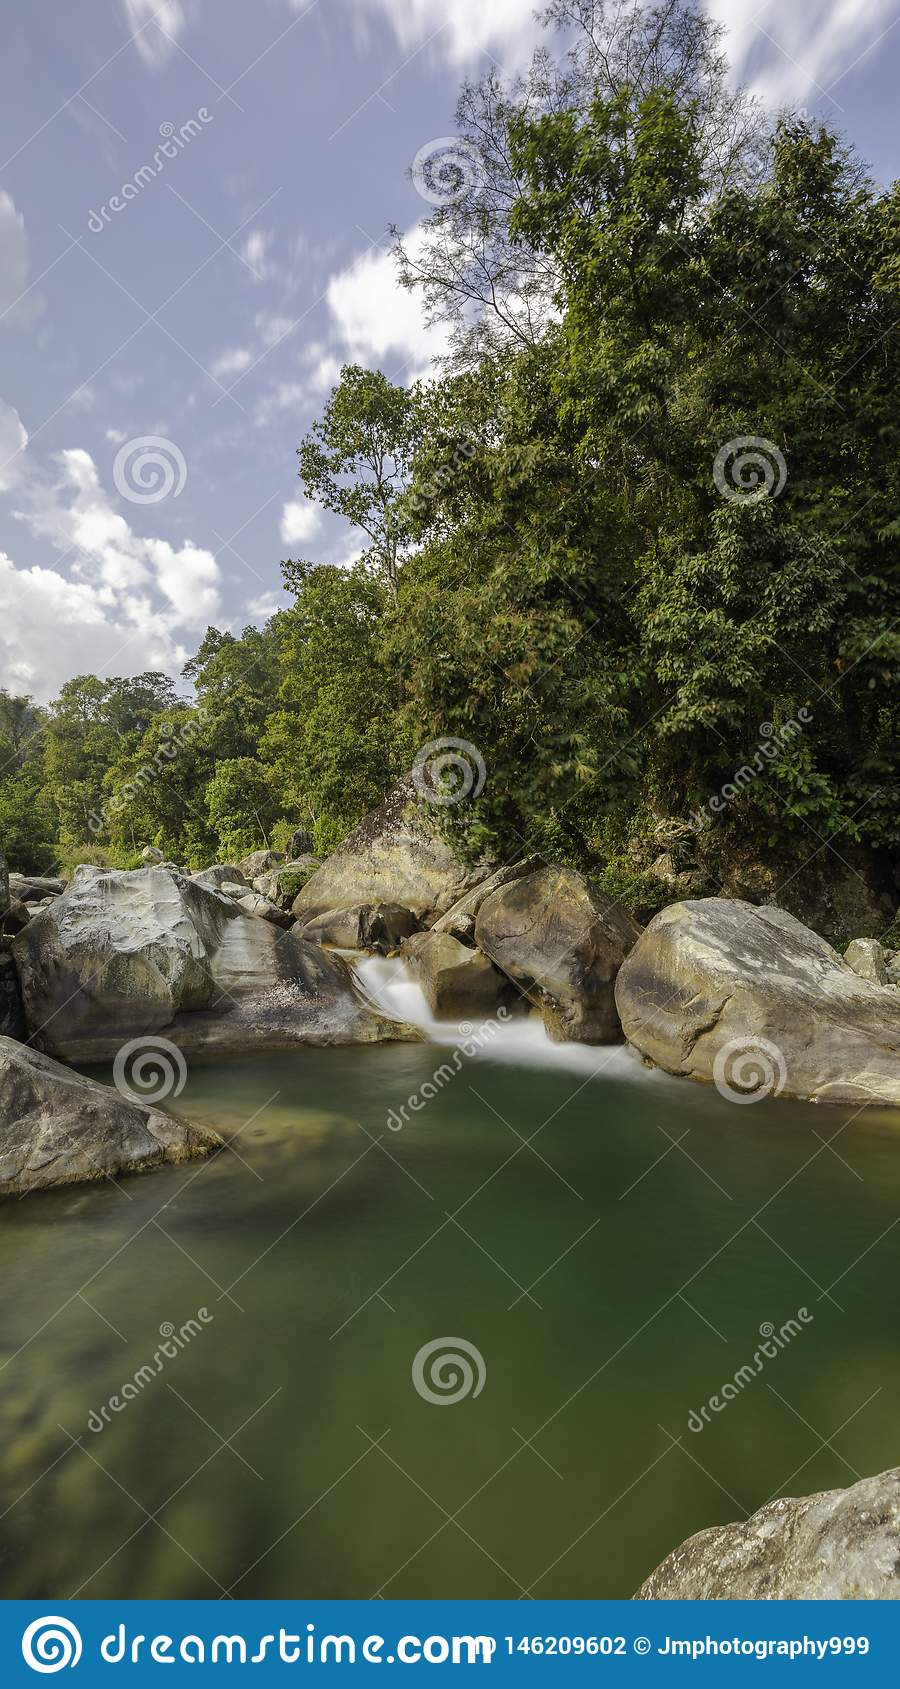 Countryside River and trees in rural area